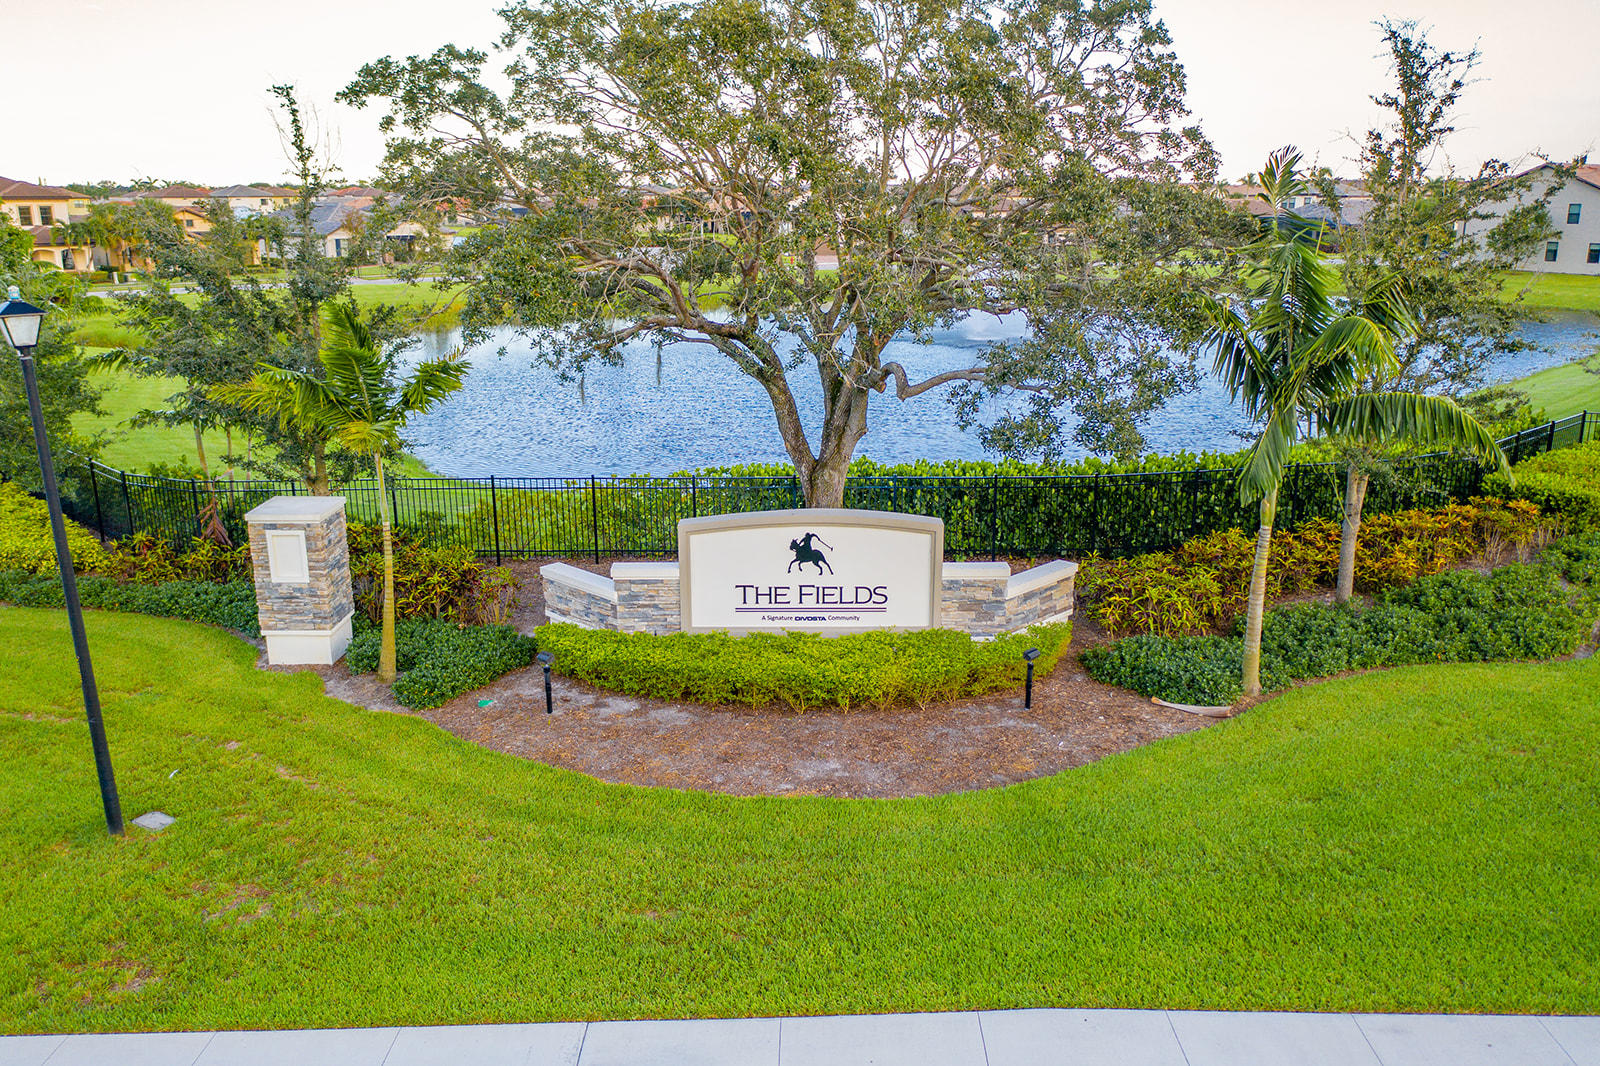 Home for sale in Fields Lake Worth Florida